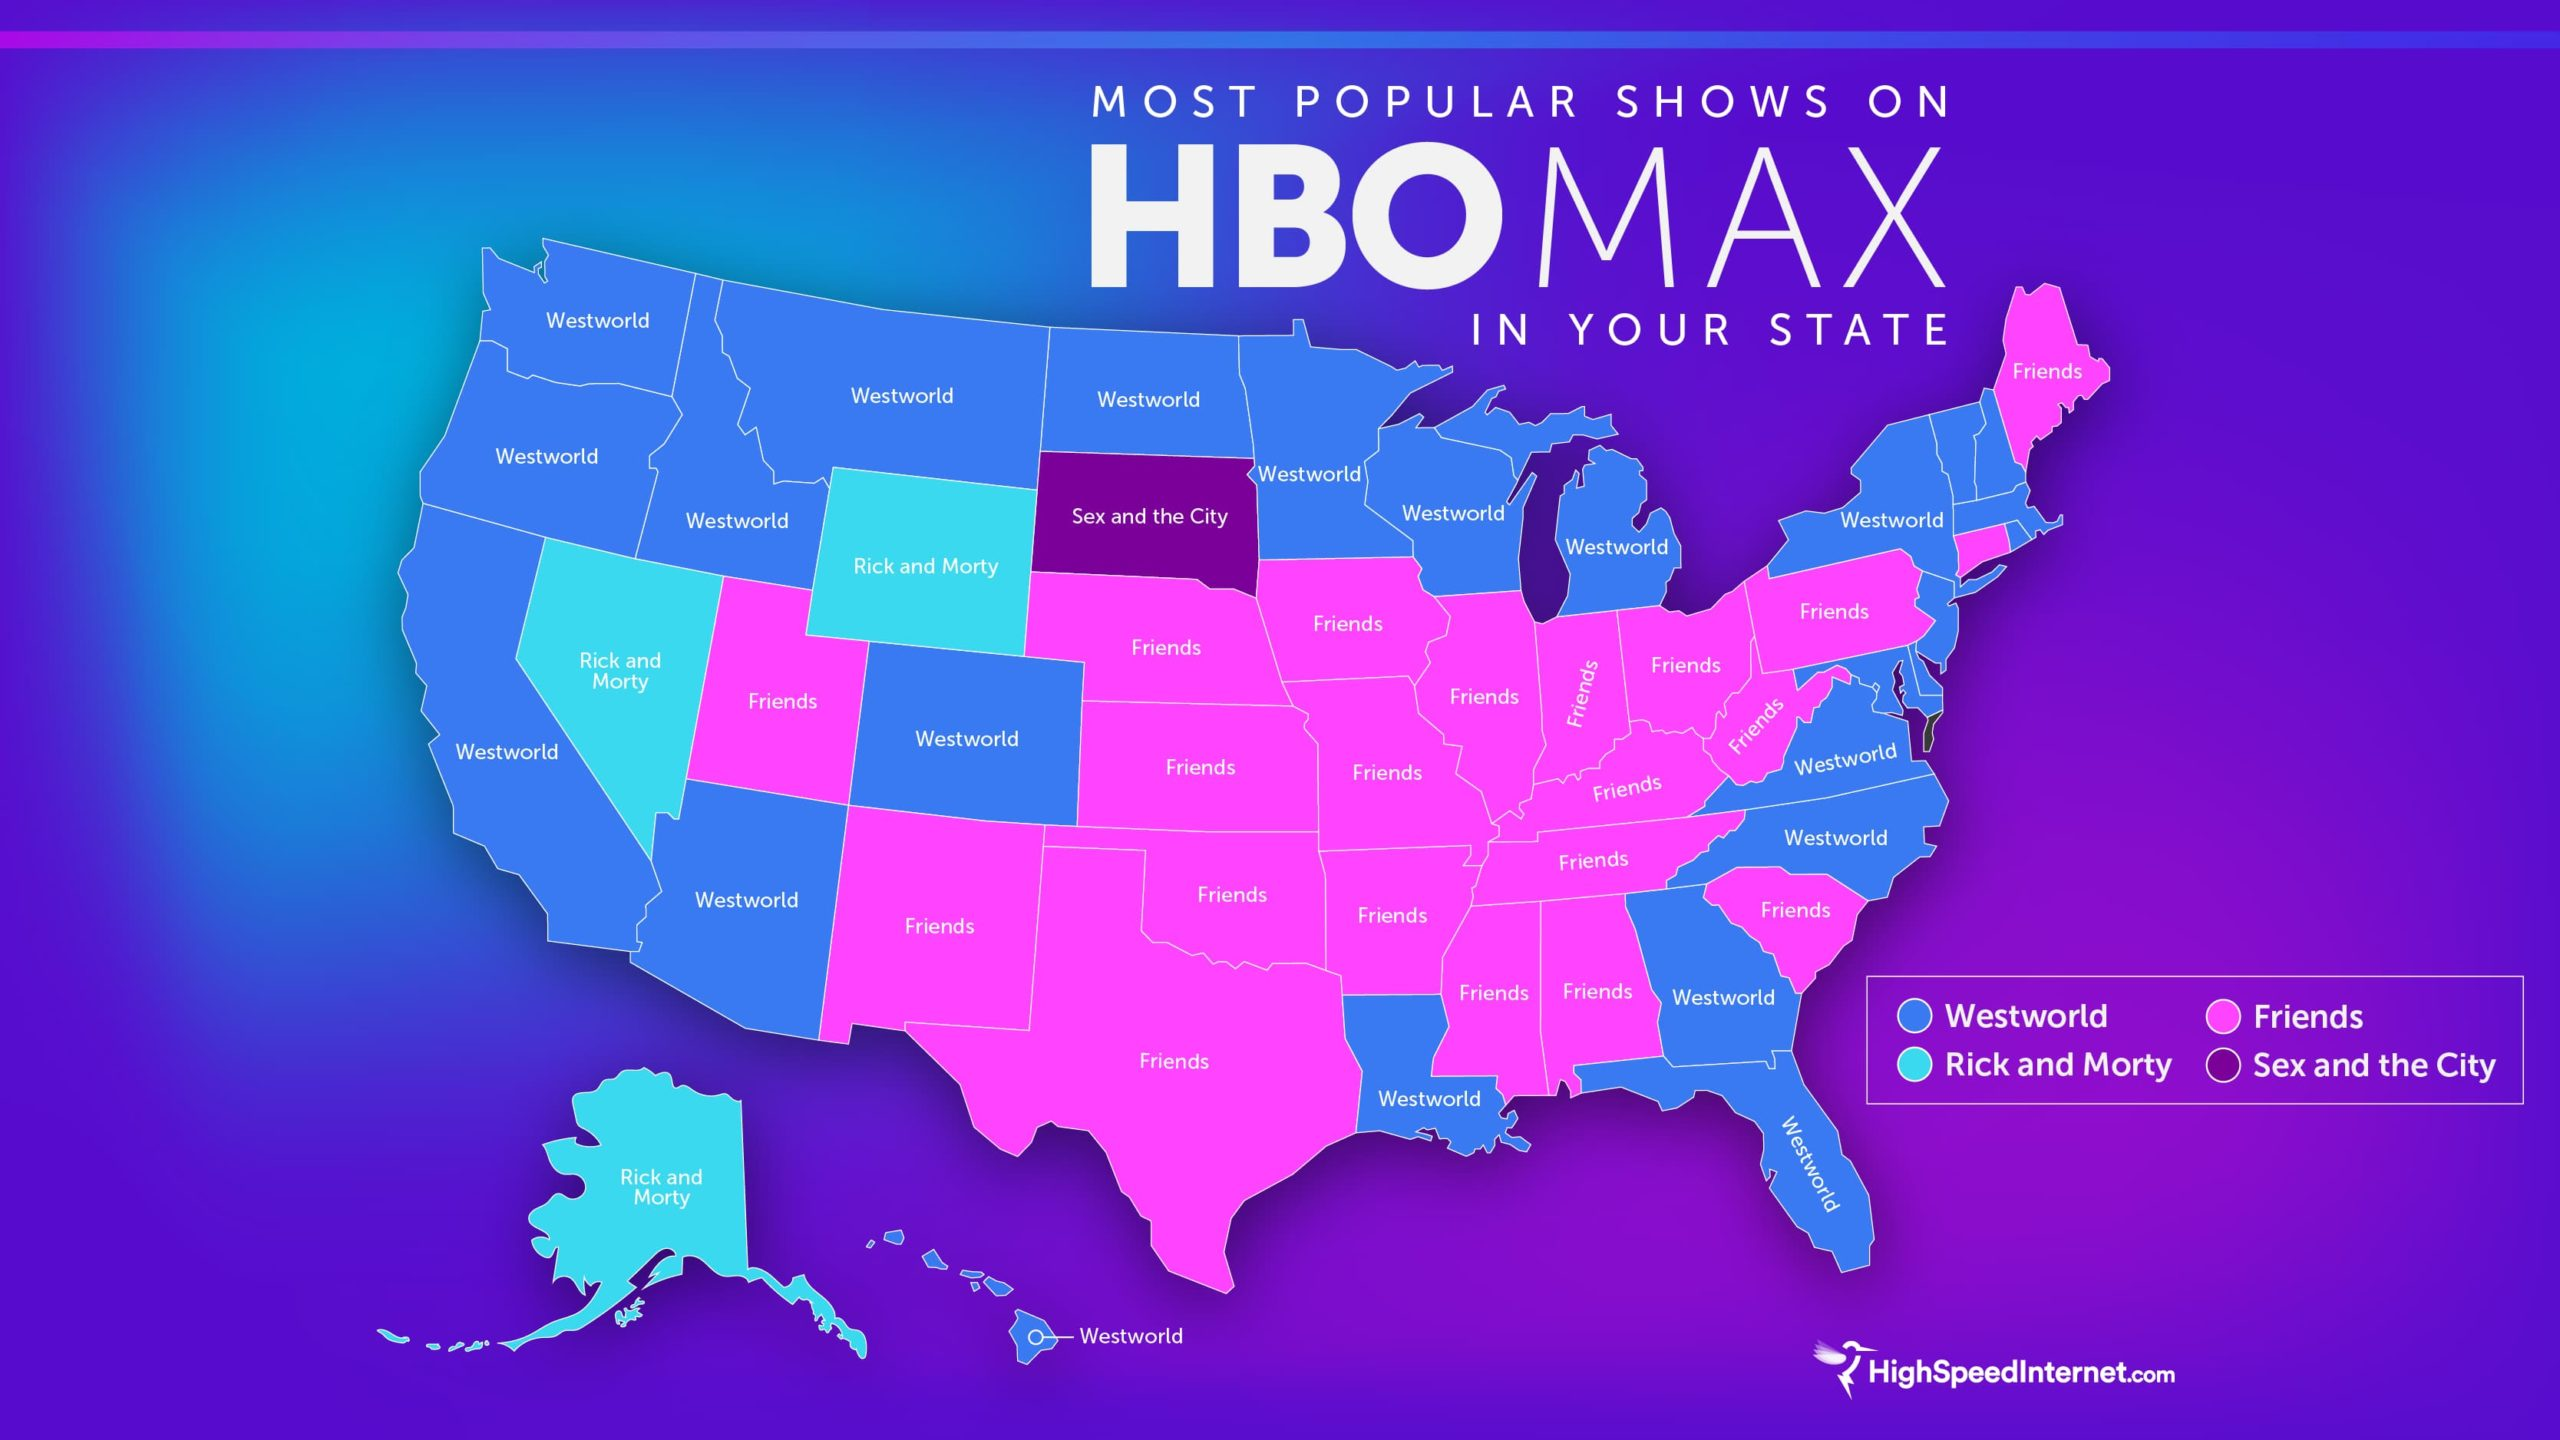 H B O Max Favorite Shows by State